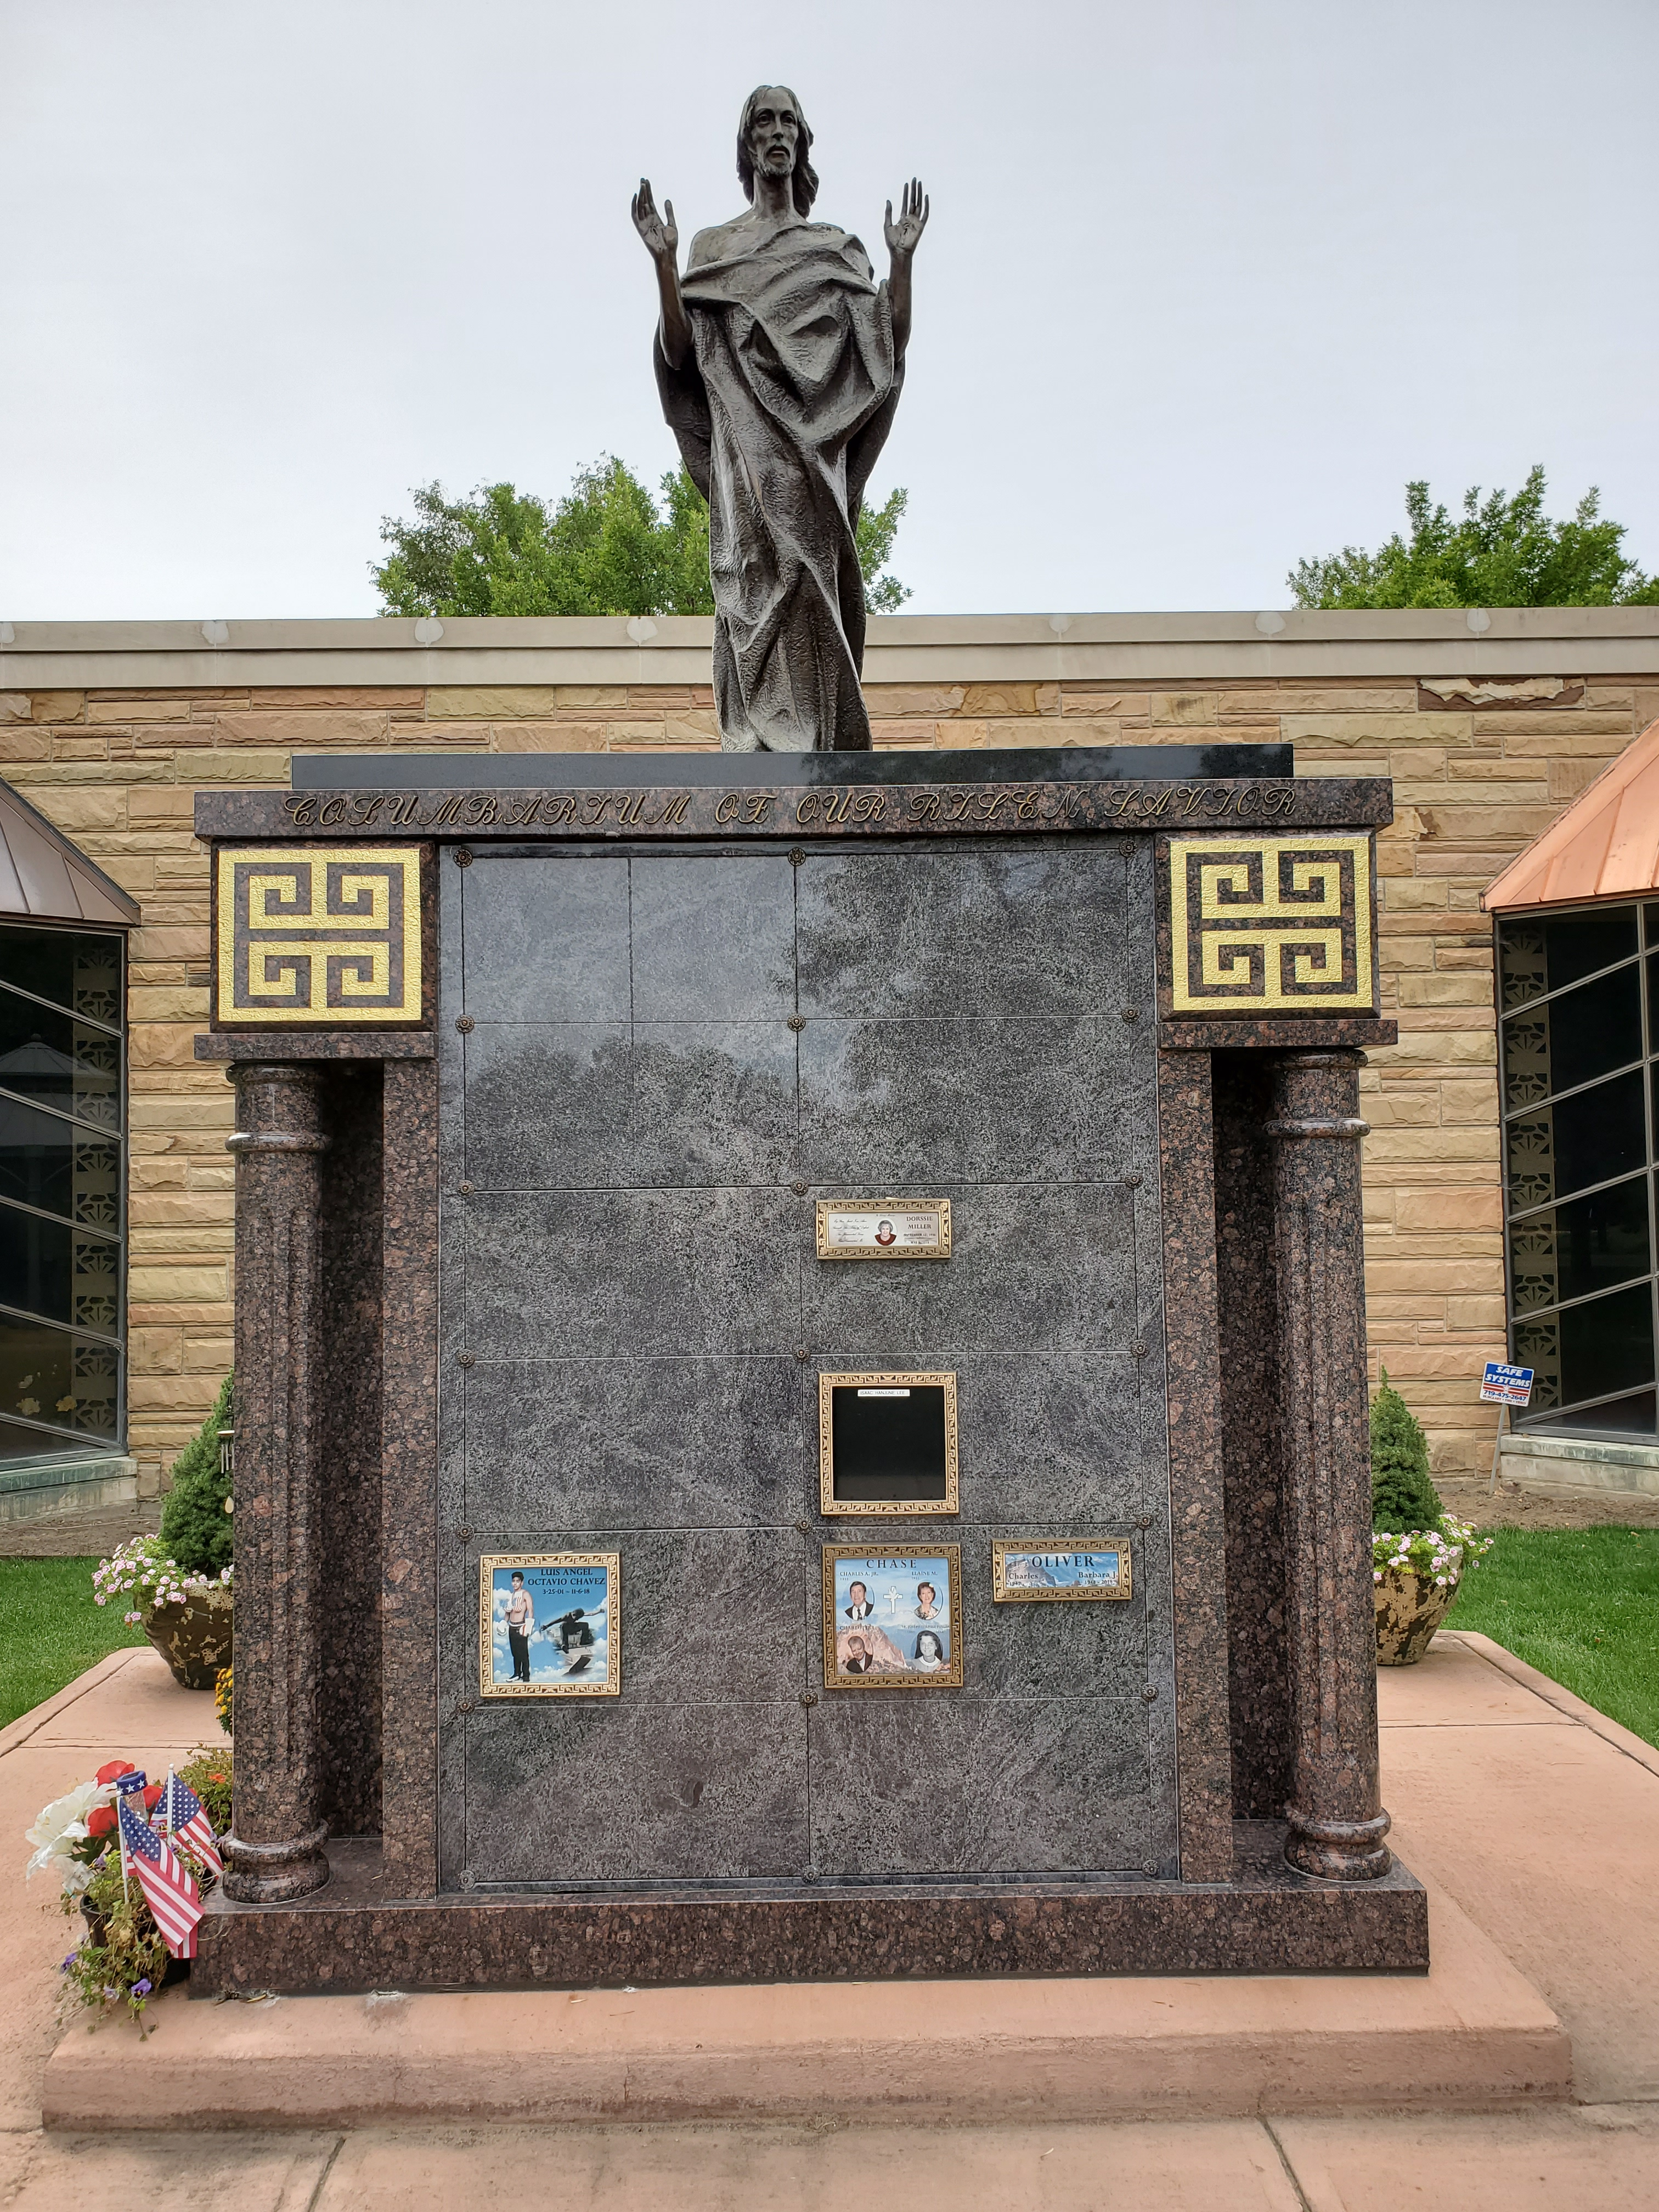 Our New Risen Savior Columbarium offering family estate niches weighing eleven tons with imported granite together with most impressive bronze Jesus statue Memorialization at its finest with state of the art bronze plaques for personalized photographs